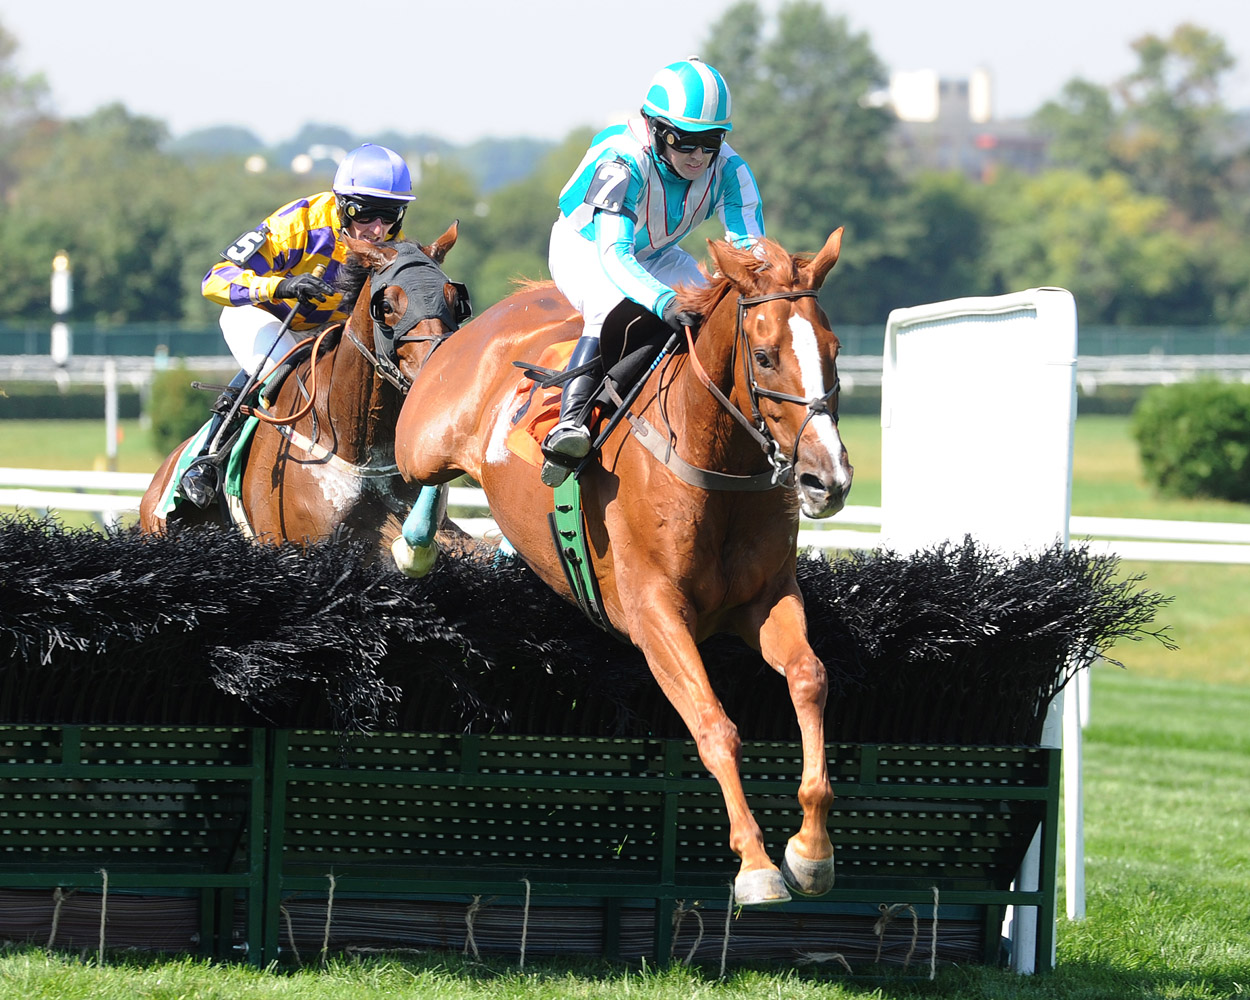 Good Night Shirt (Dowling up) clearing a jump in the 2007 Lonesome Glory Steeplechase at Belmont Park (NYRA)